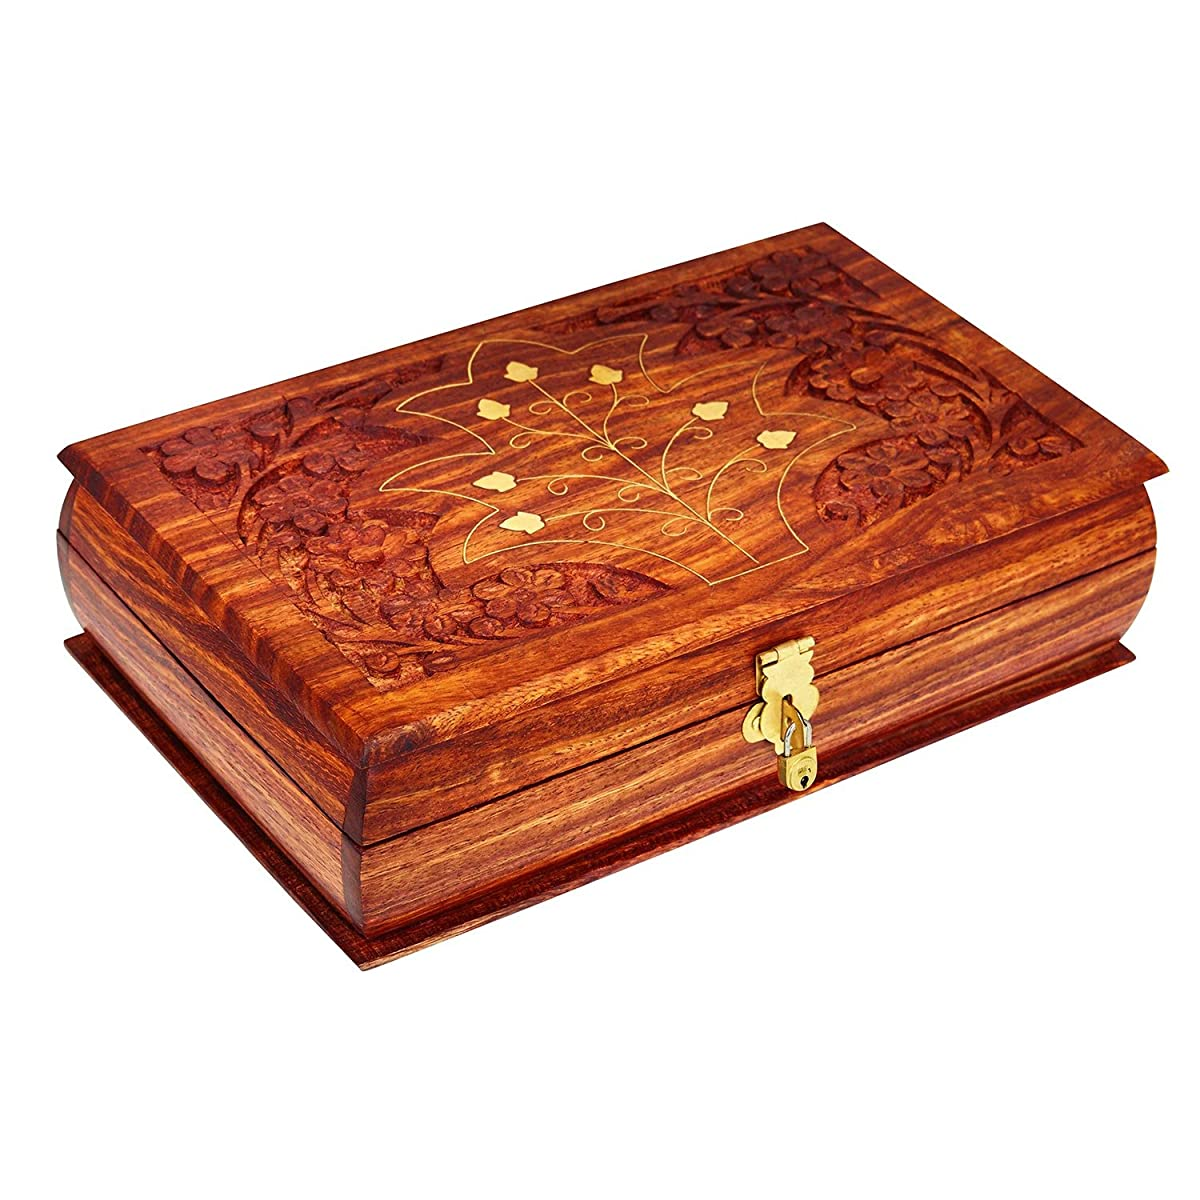 Handmade Wooden Jewelry Box With Free Lock & Key Keepsake Box Treasure Chest Lock Box Watch Box Storage Box Trinket Holder 8 x 5 Inches Birthday Housewarming Gift Ideas For Men & Women